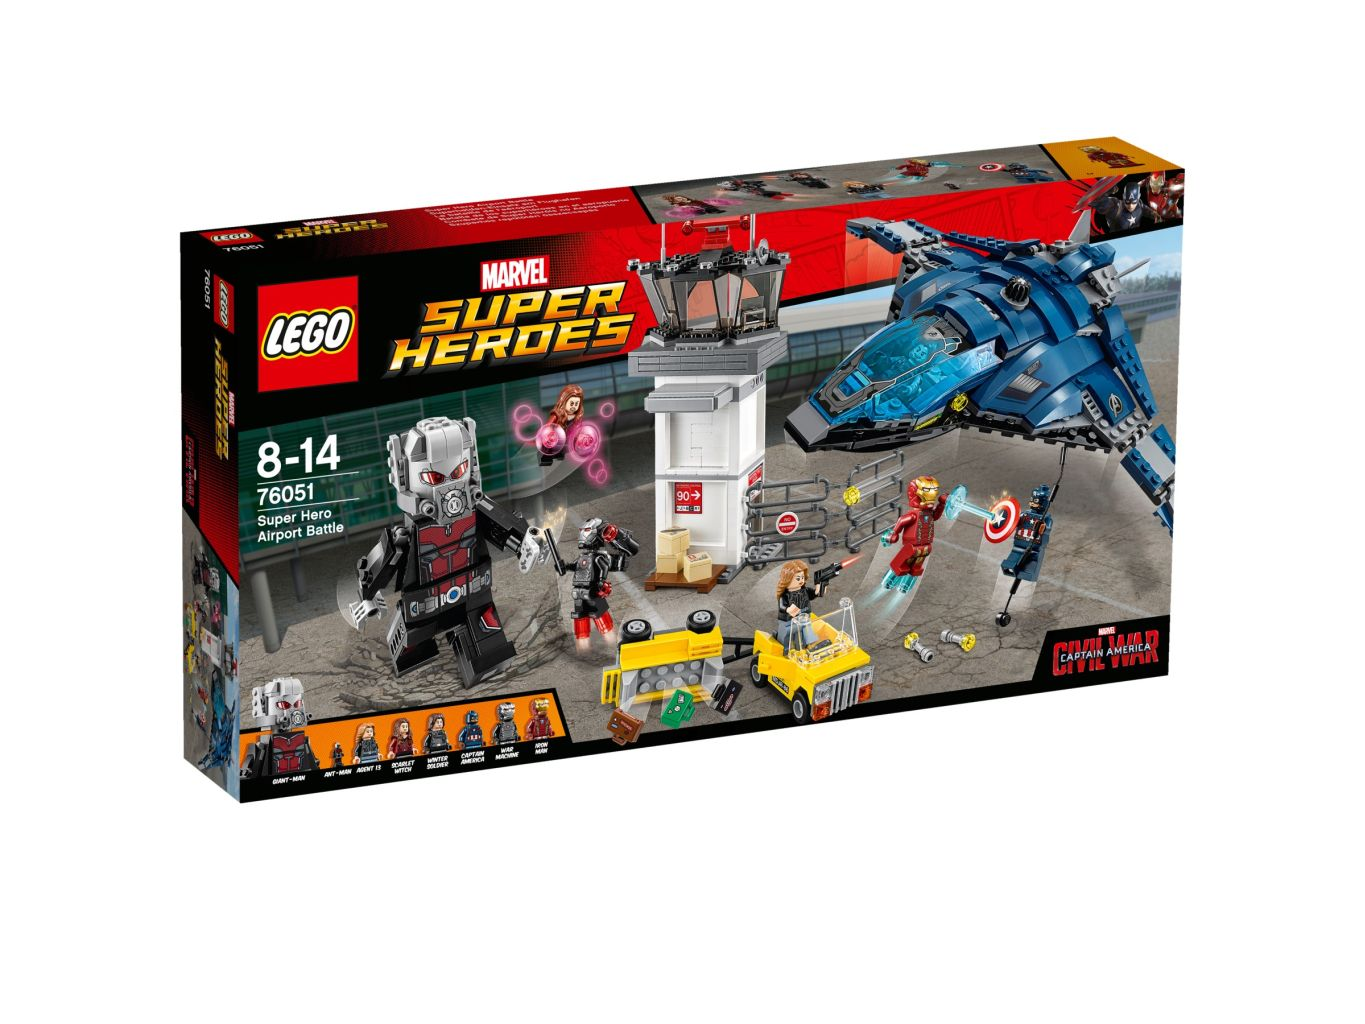 Lego 76051 Confidential - Captain America Movie 2